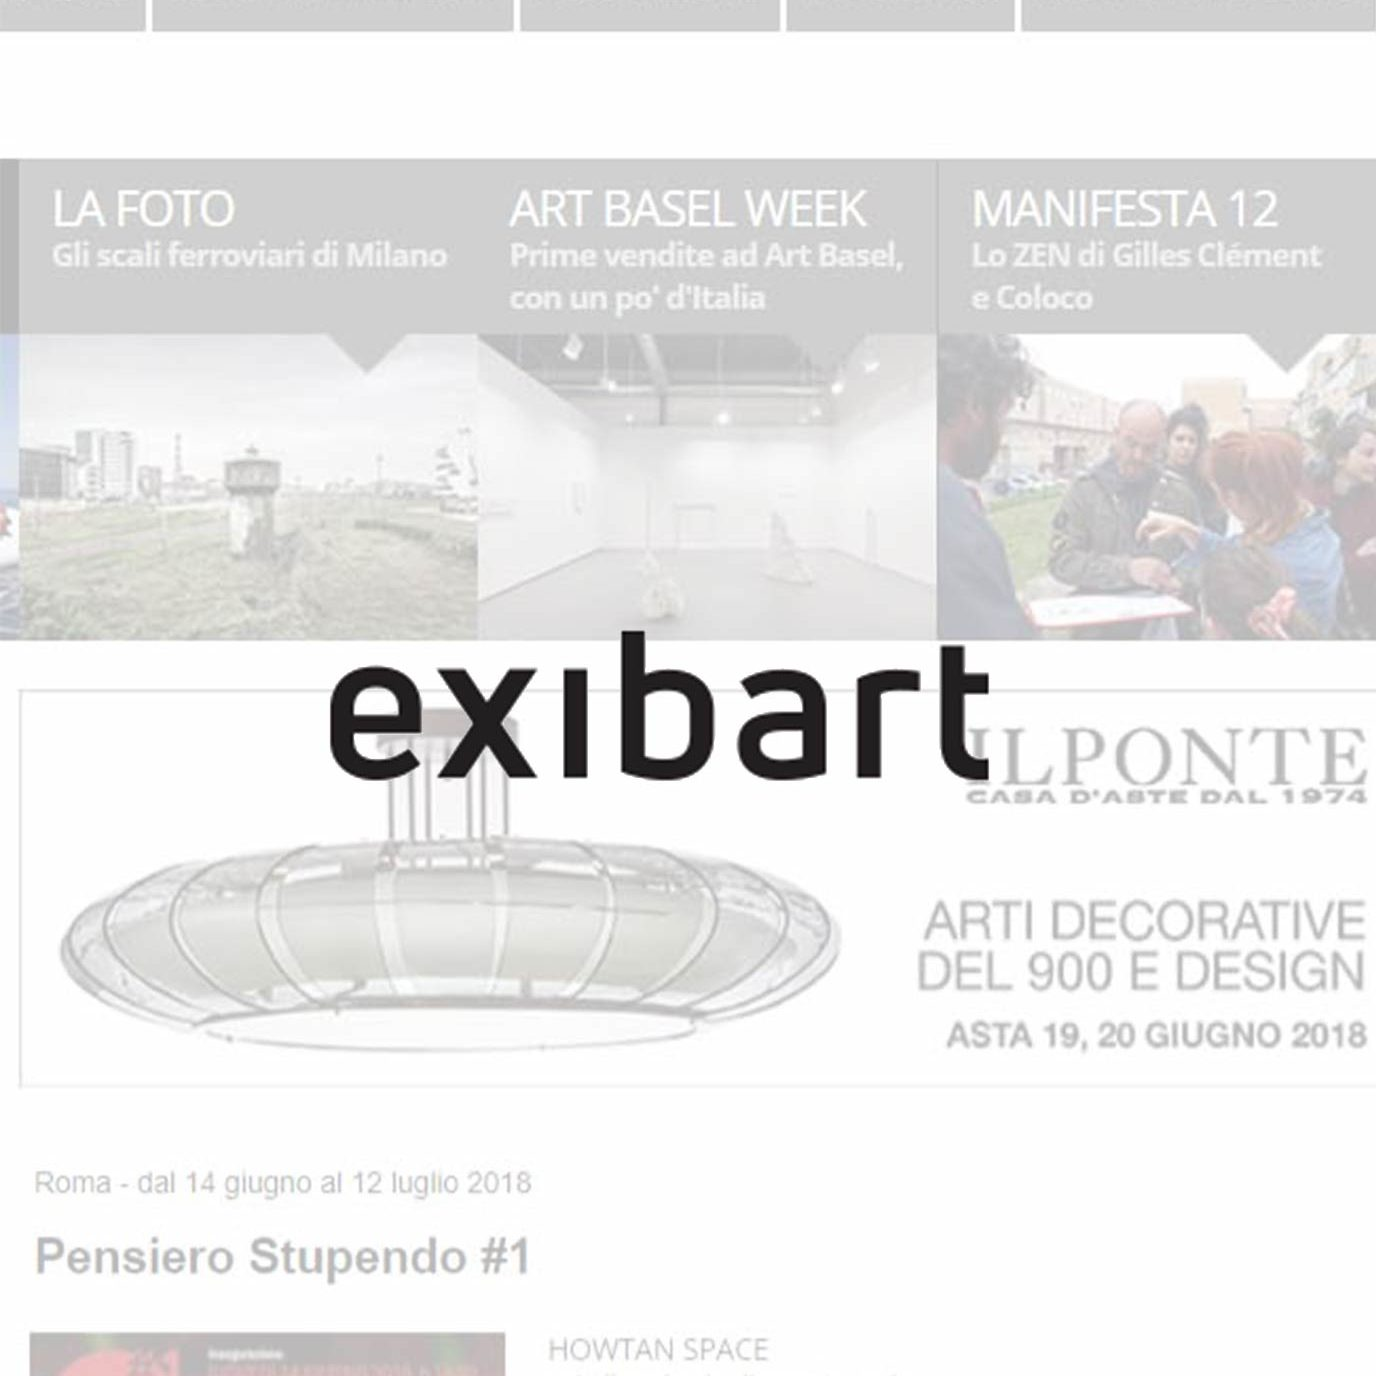 exiart2ant